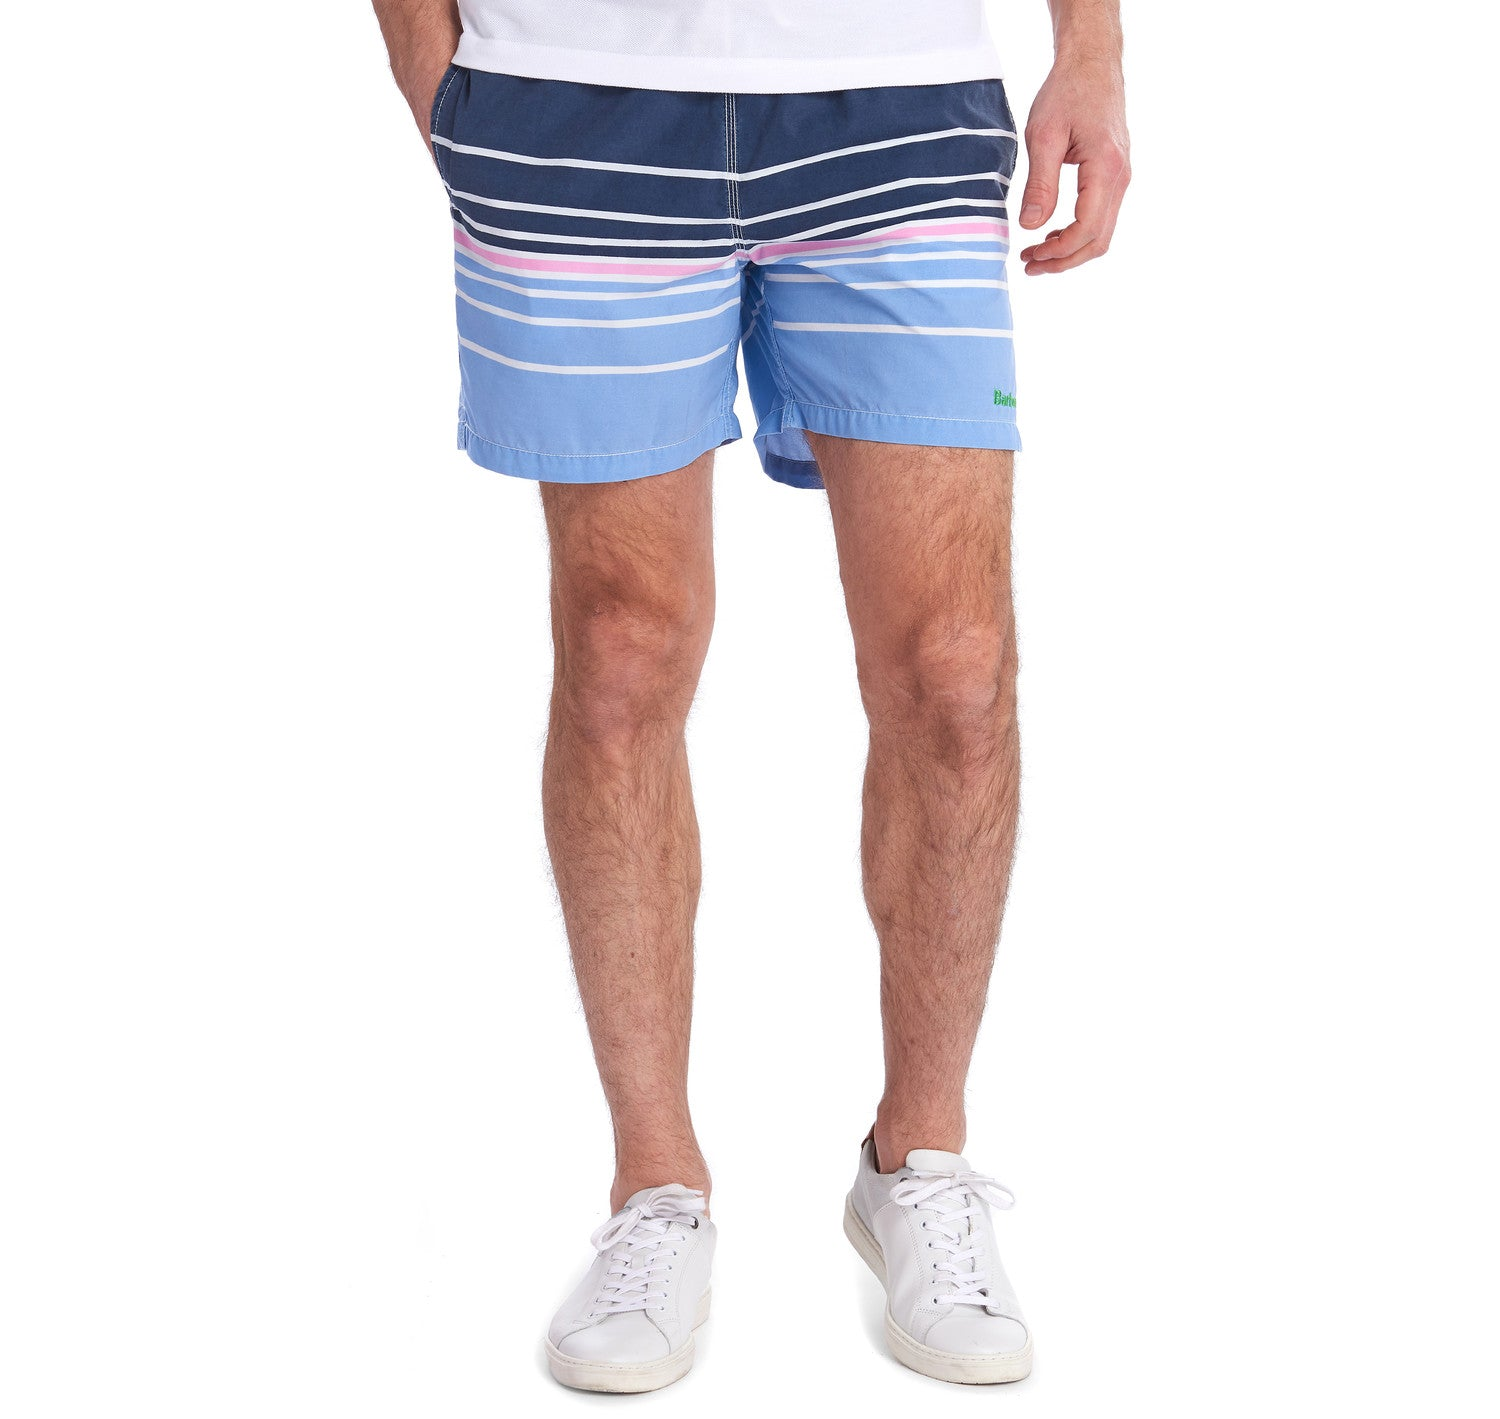 Barbour Gradient Swim Shorts for Men in Navy